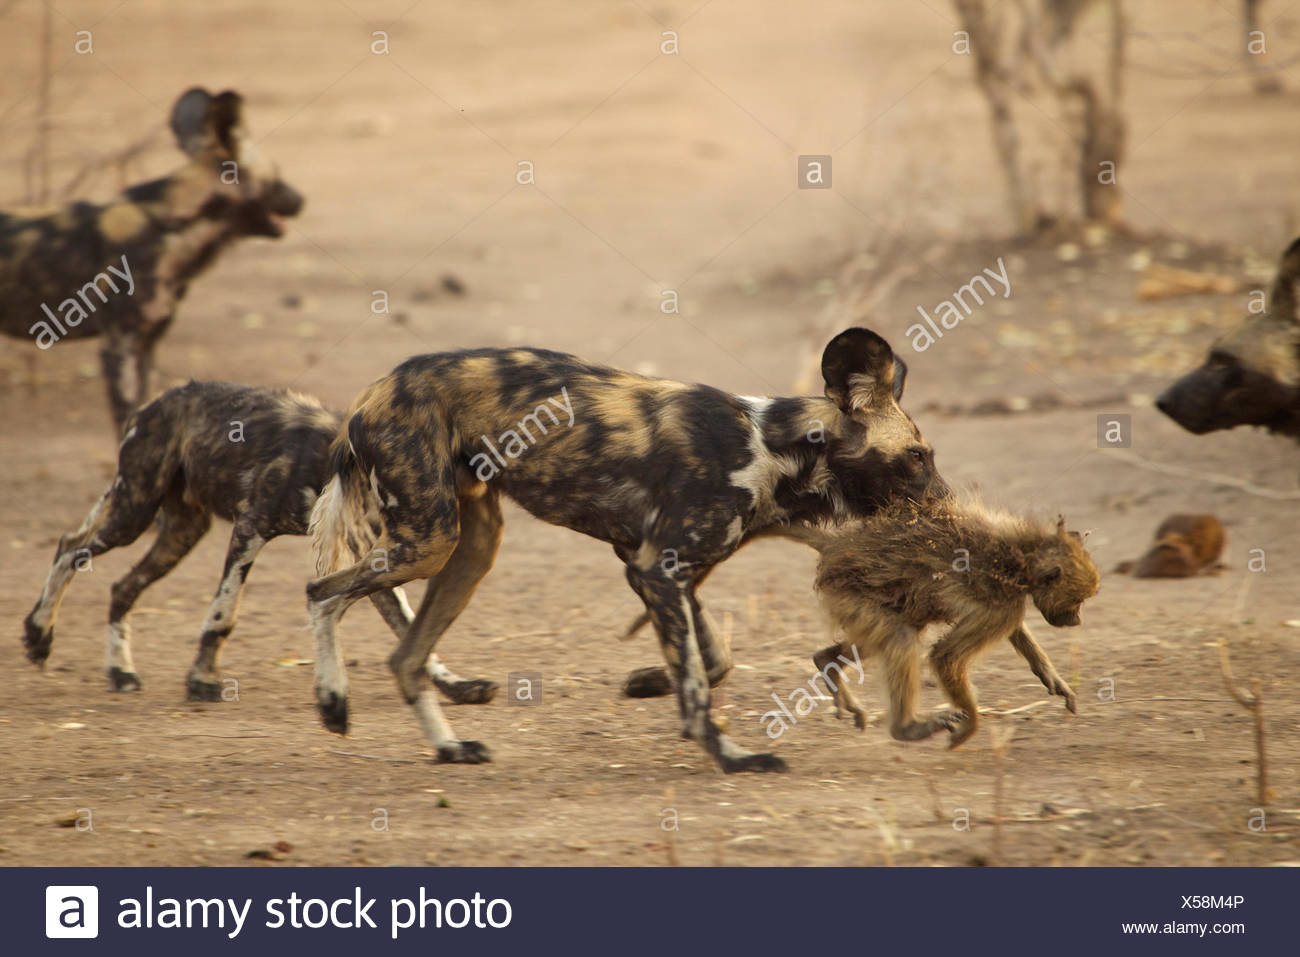 African Wild Dog Carrying A Baboon In Its Mouth Mana Pools Zimbabwe Stock Photo Alamy